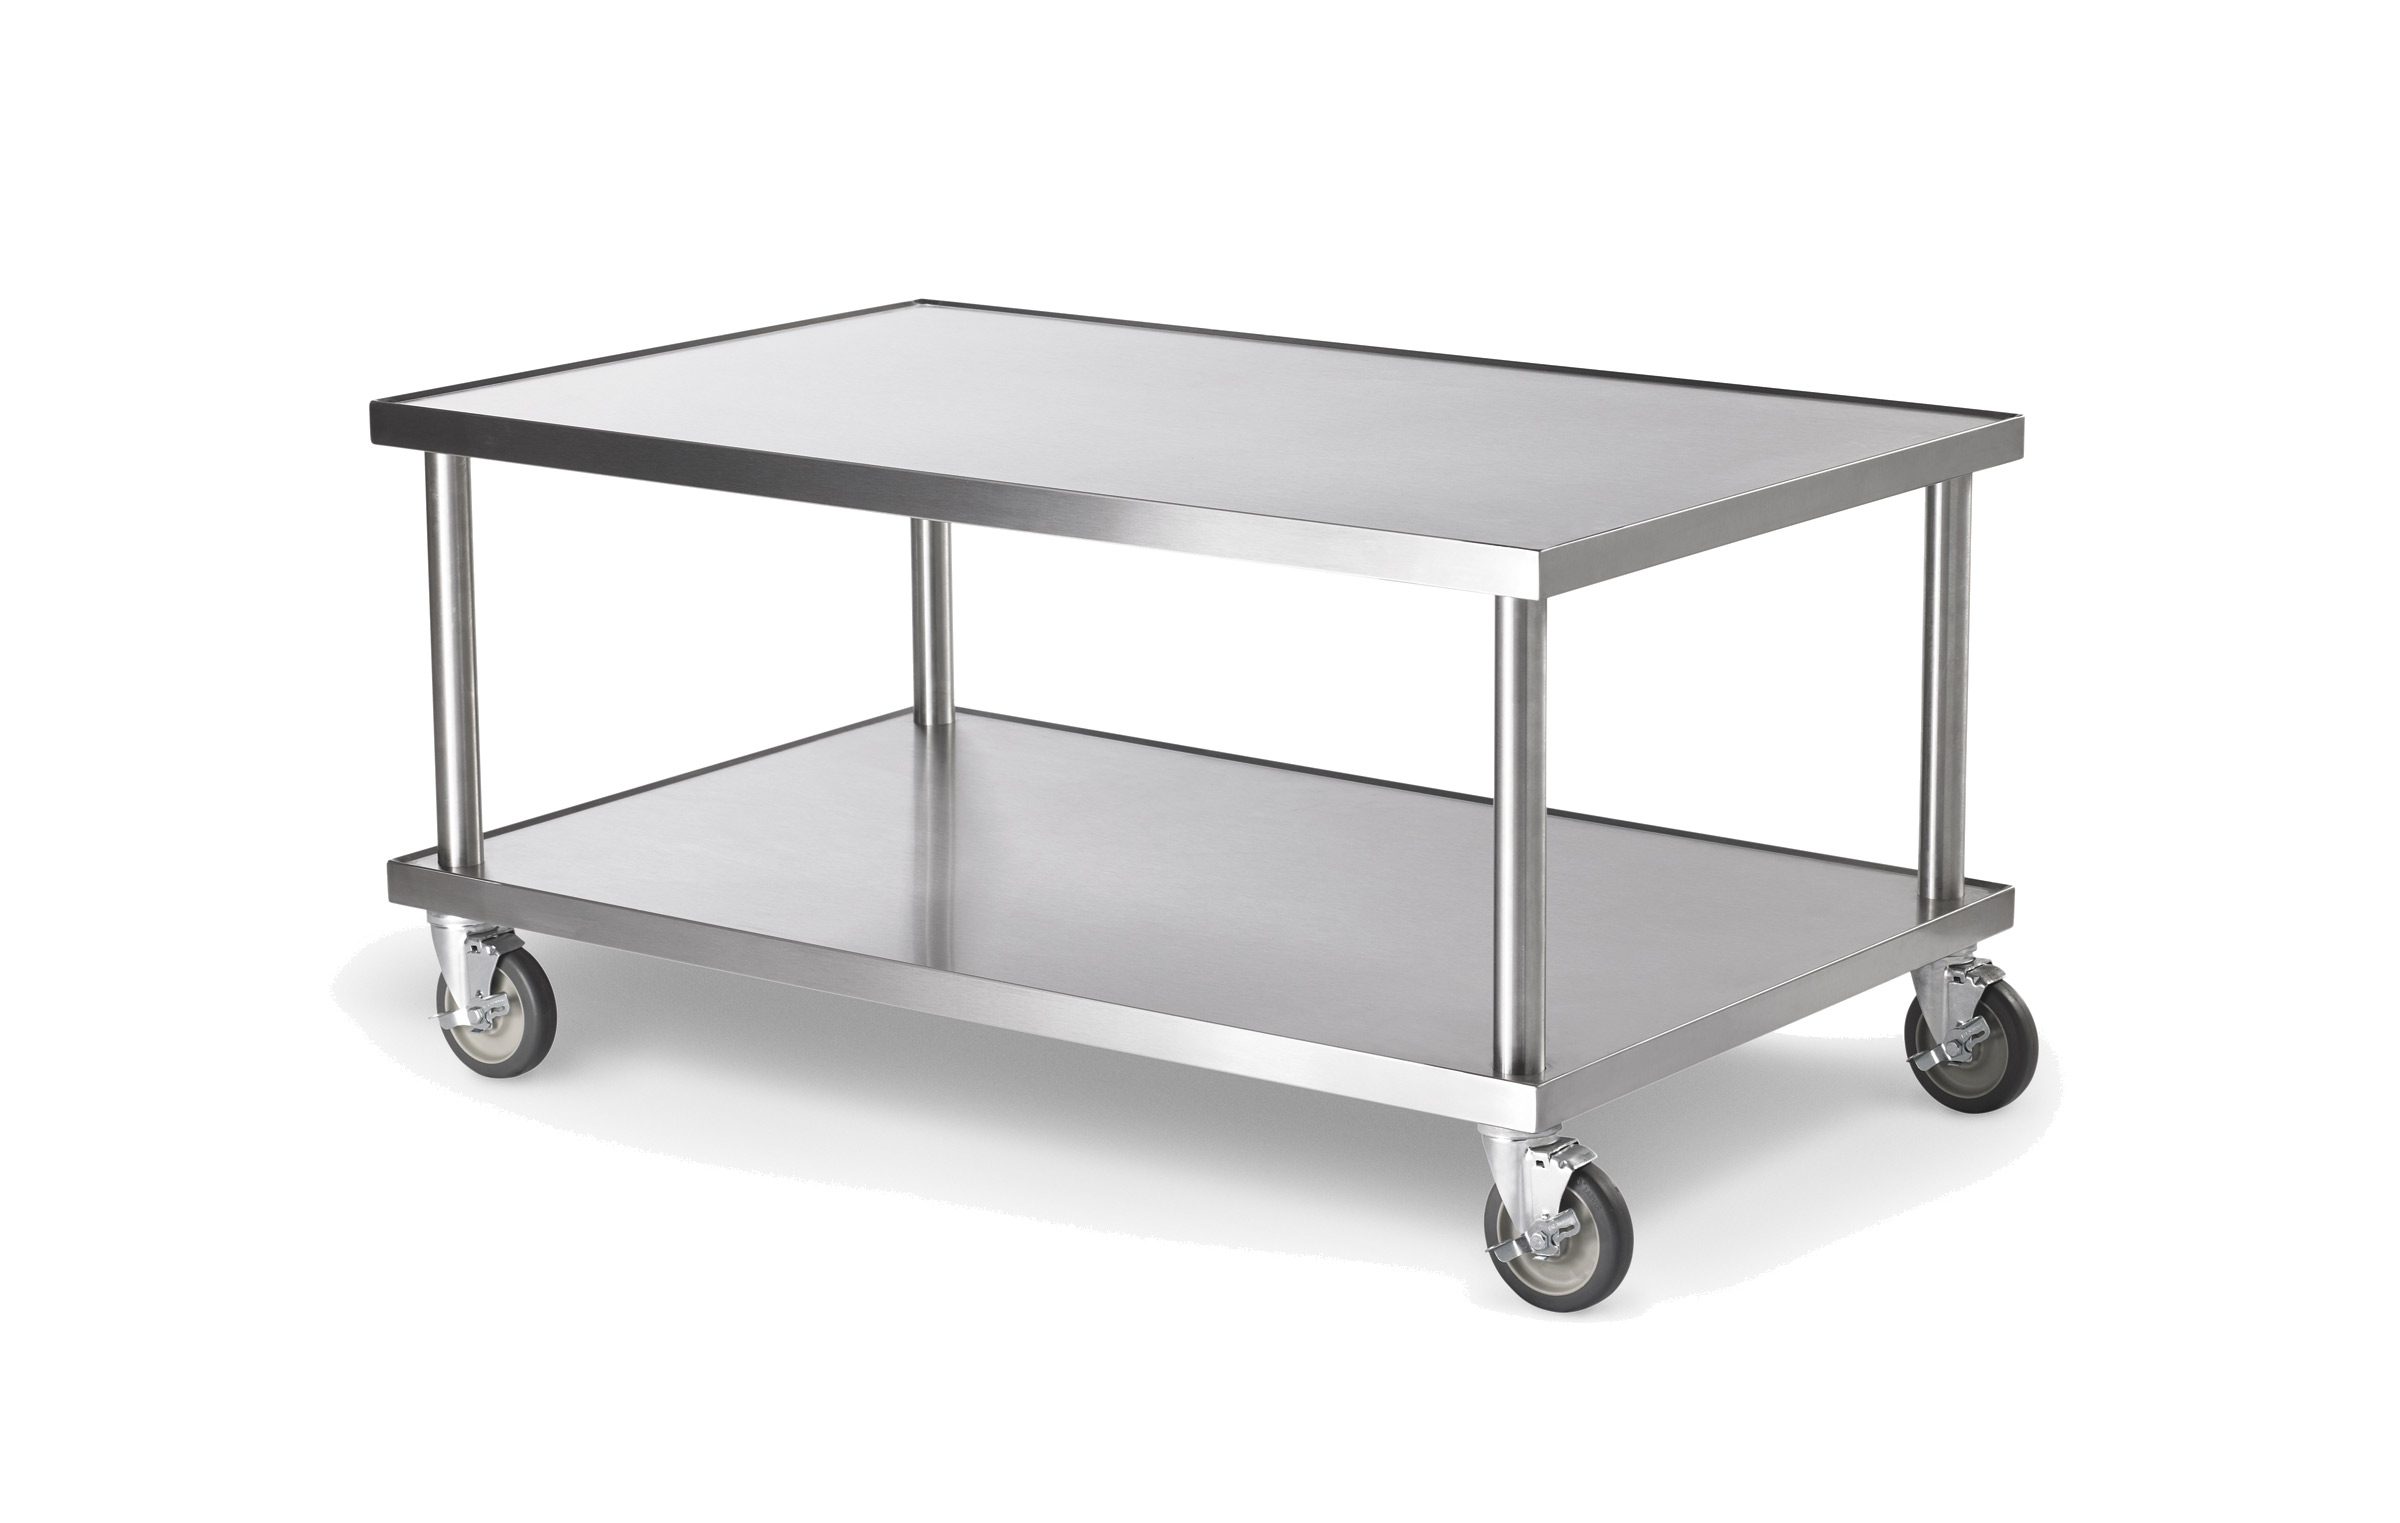 Vollrath 4087924 equipment stand, for countertop cooking